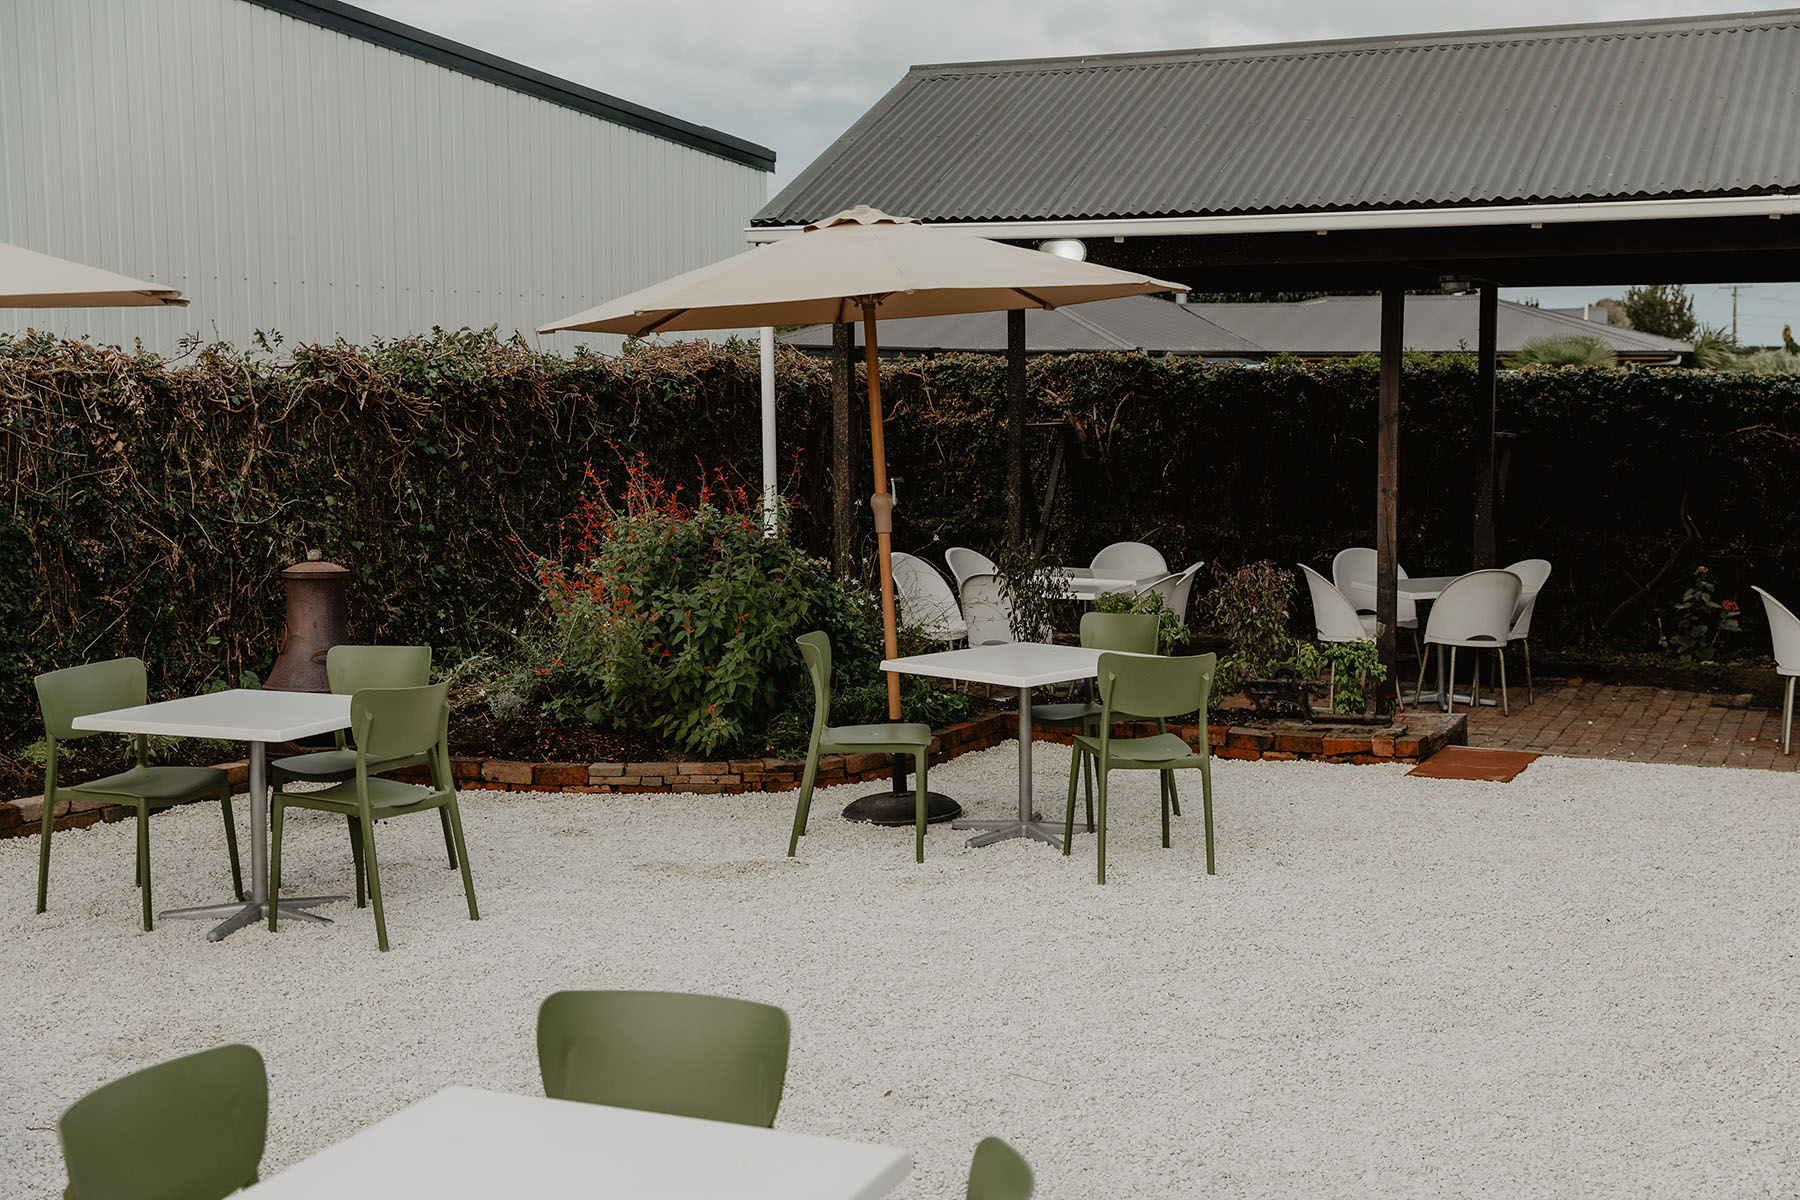 The Trading Post courtyard